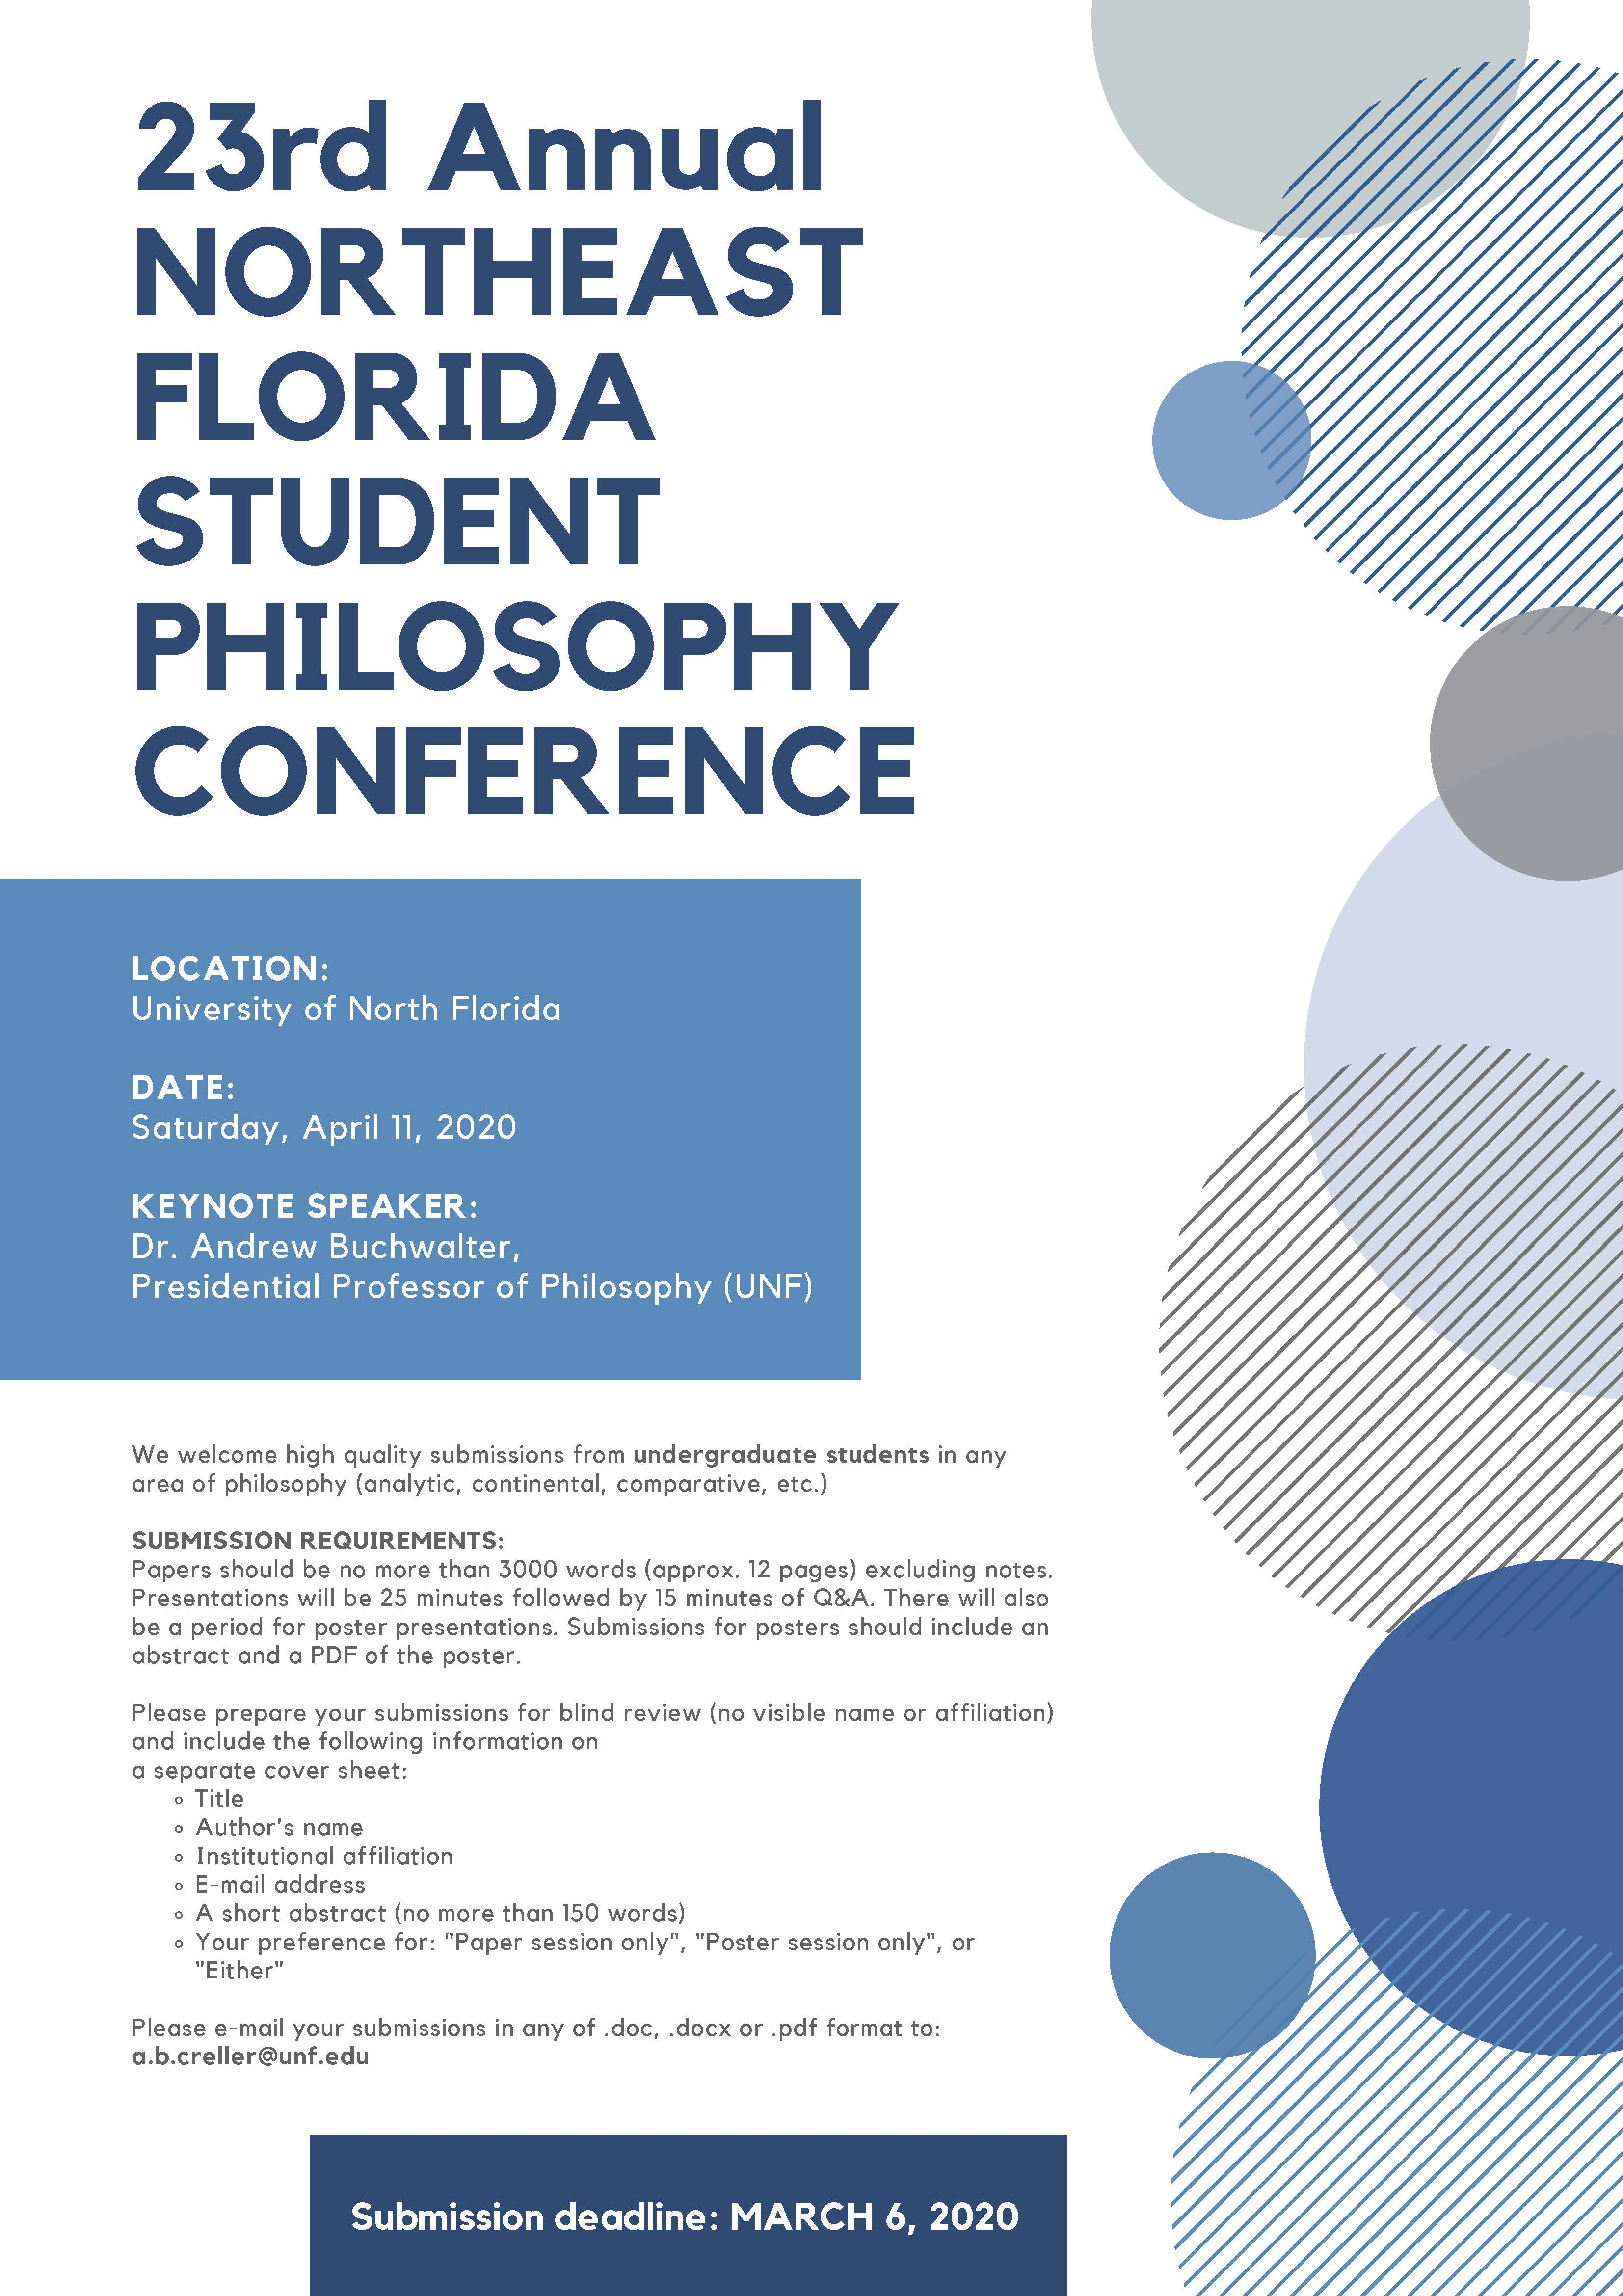 23rd Annual Northeast Florida Student Philosophy Conference